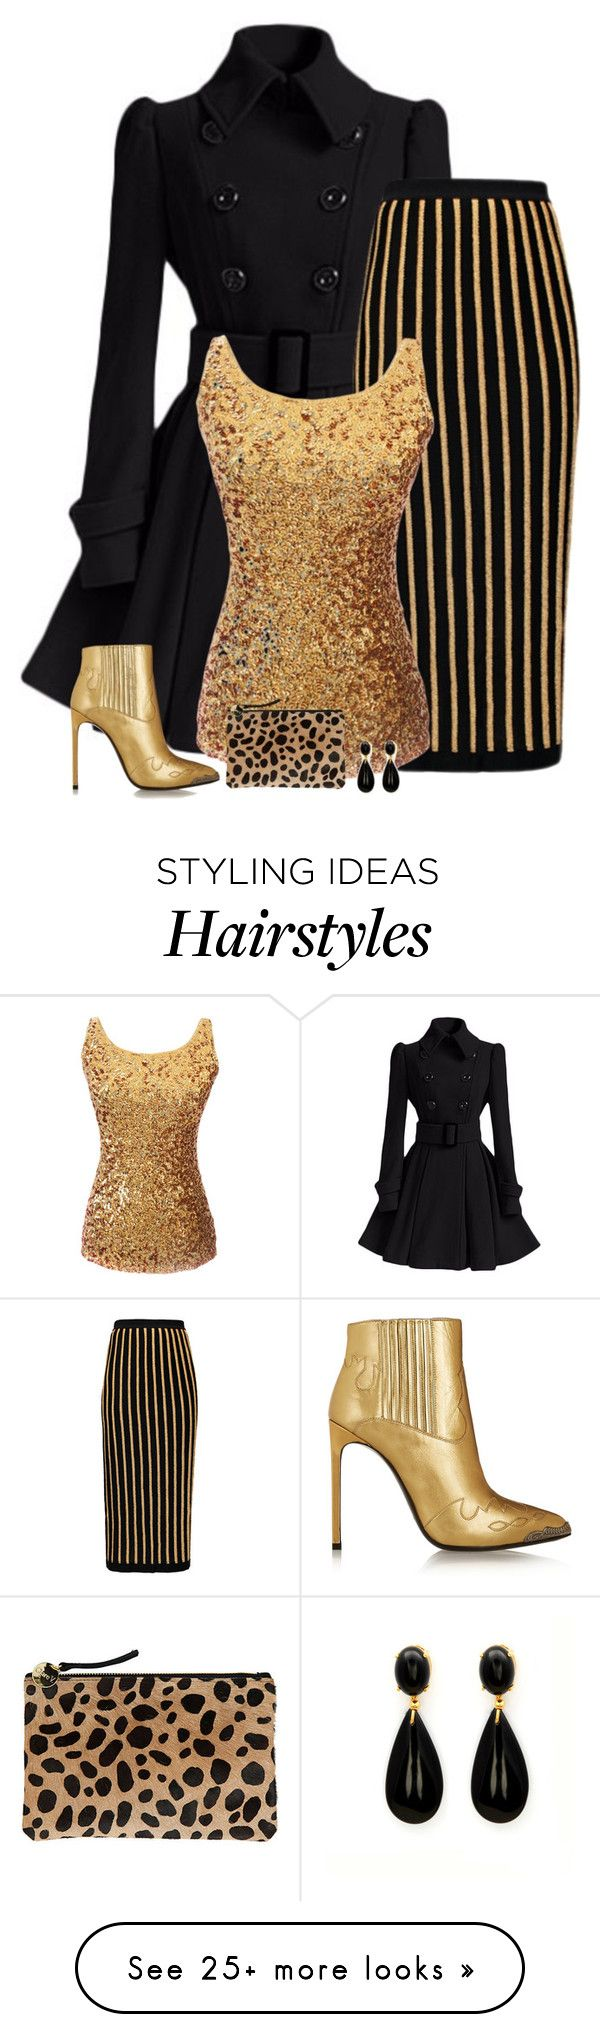 """""""black & gold"""" by divacrafts on Polyvore featuring Balmain, Yves Saint Laurent, Clare V. and Original"""